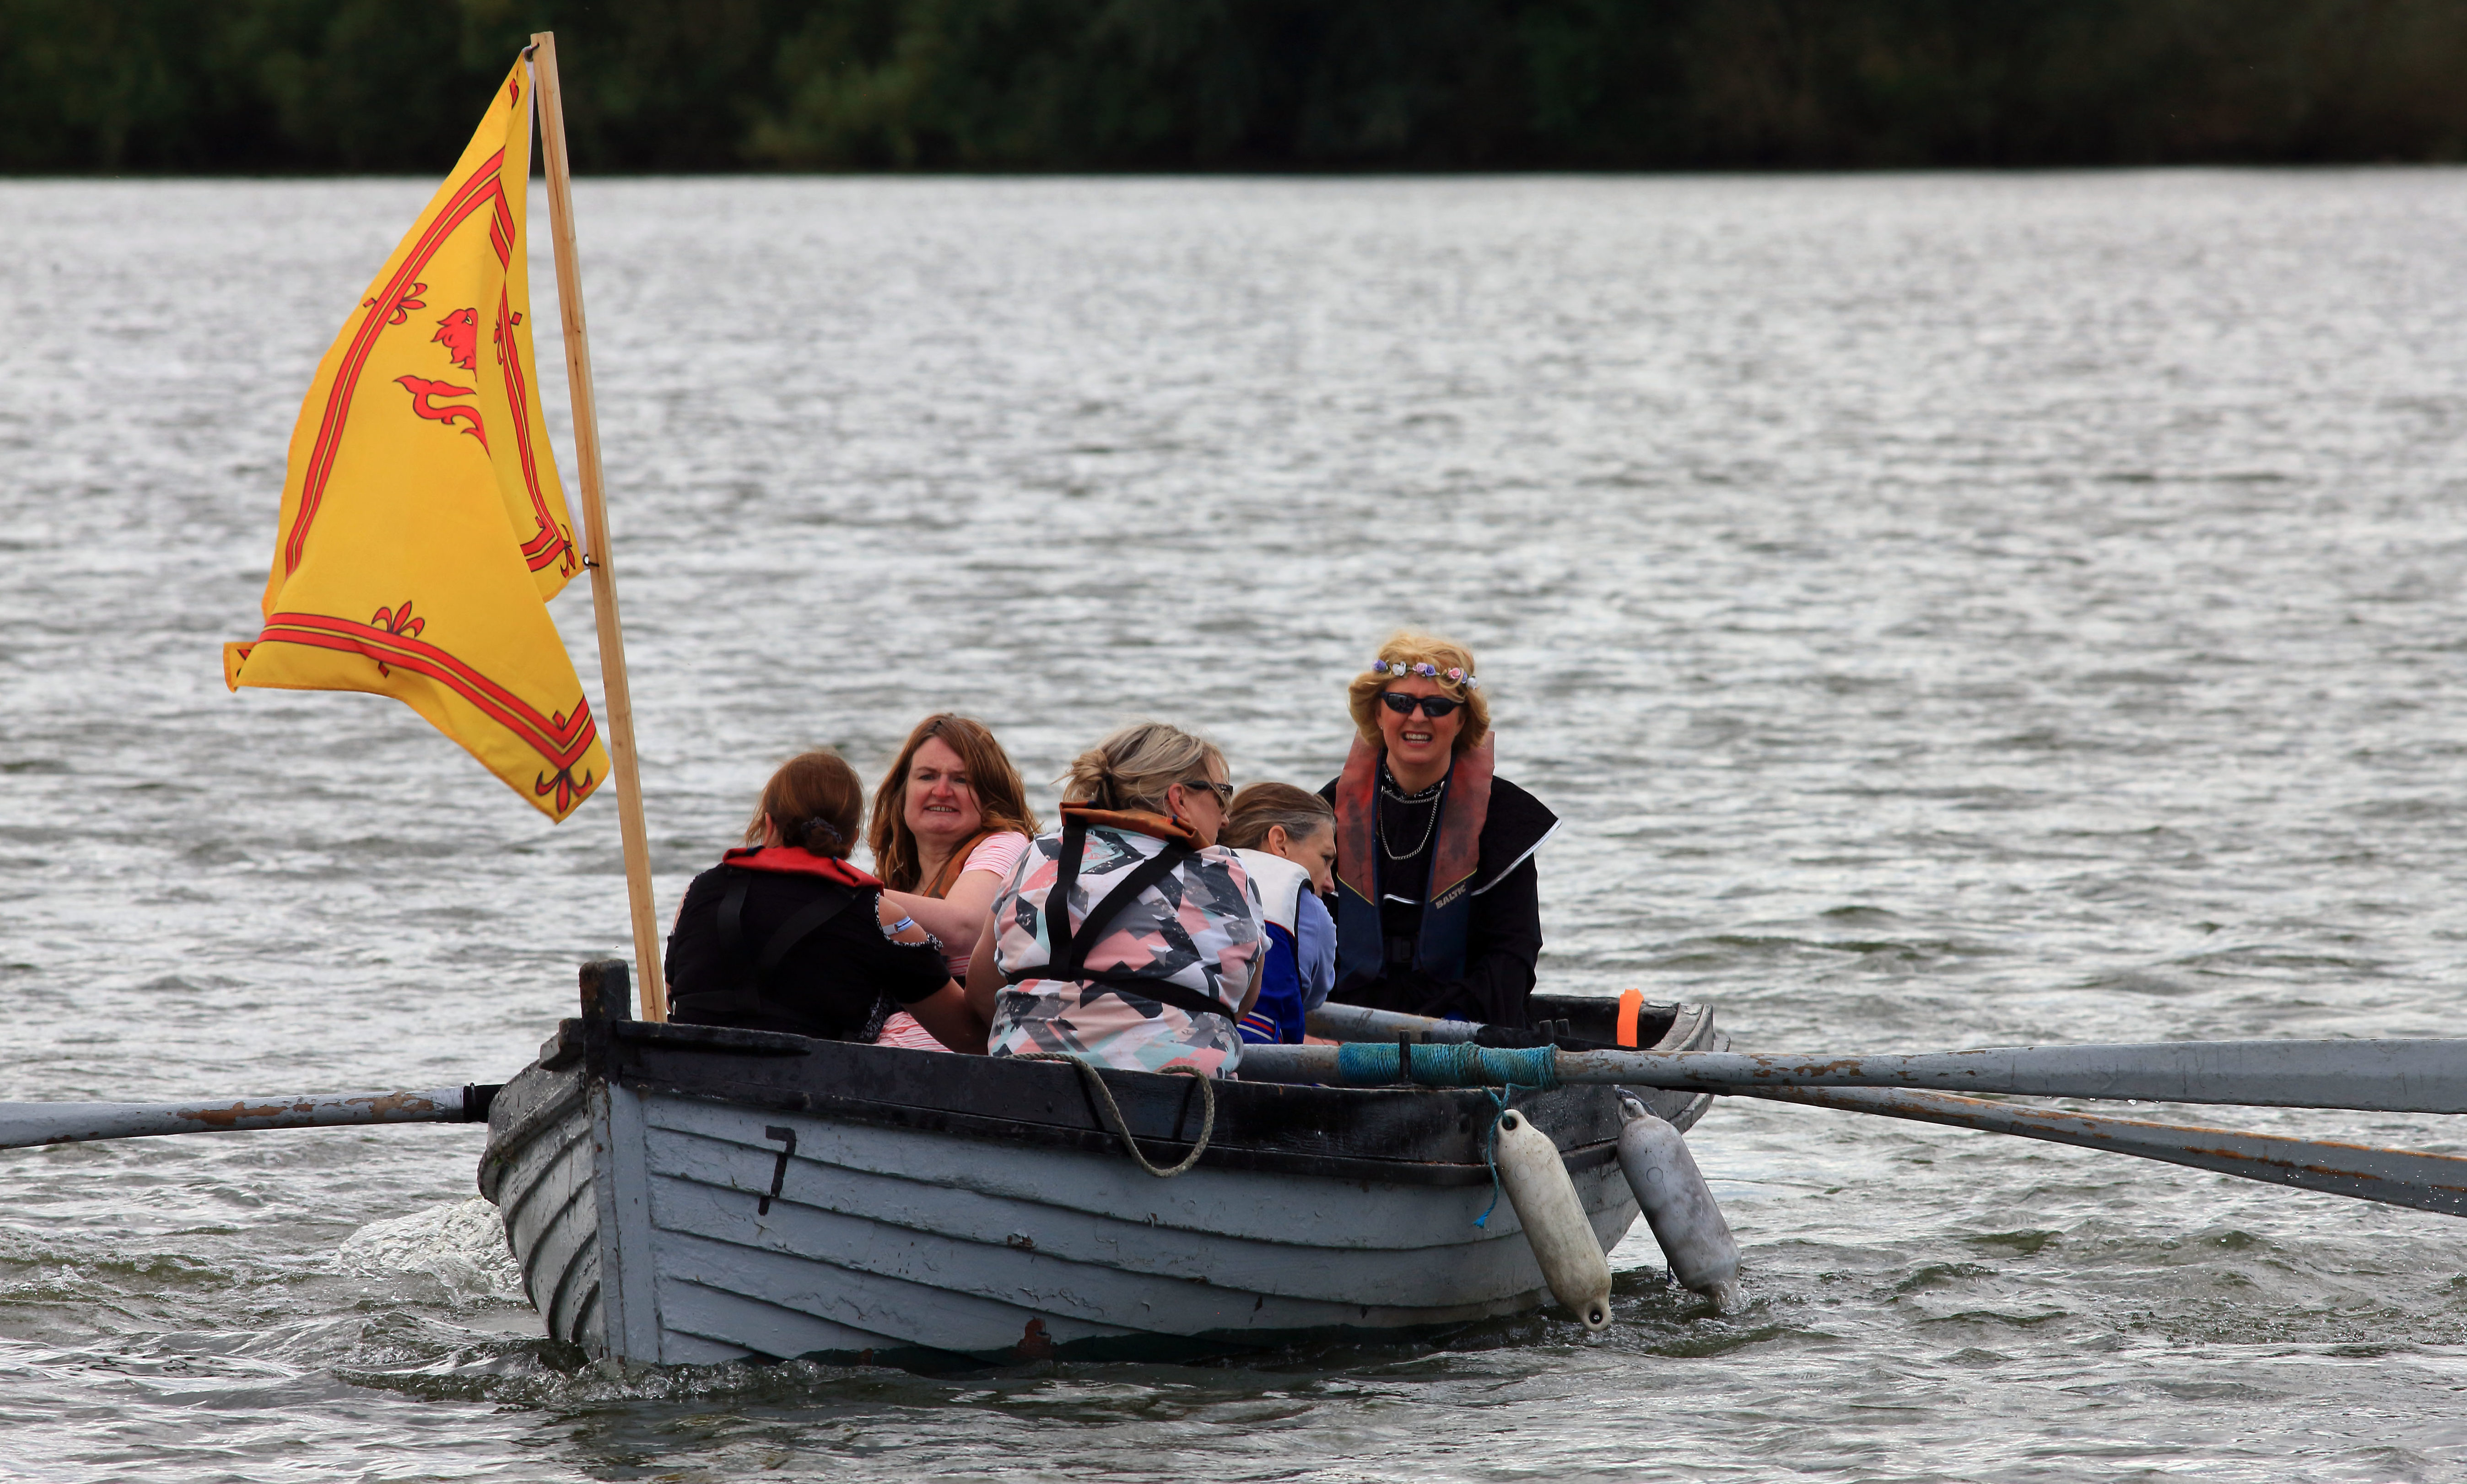 Mary Queen of Scots boat race at Loch Leven.